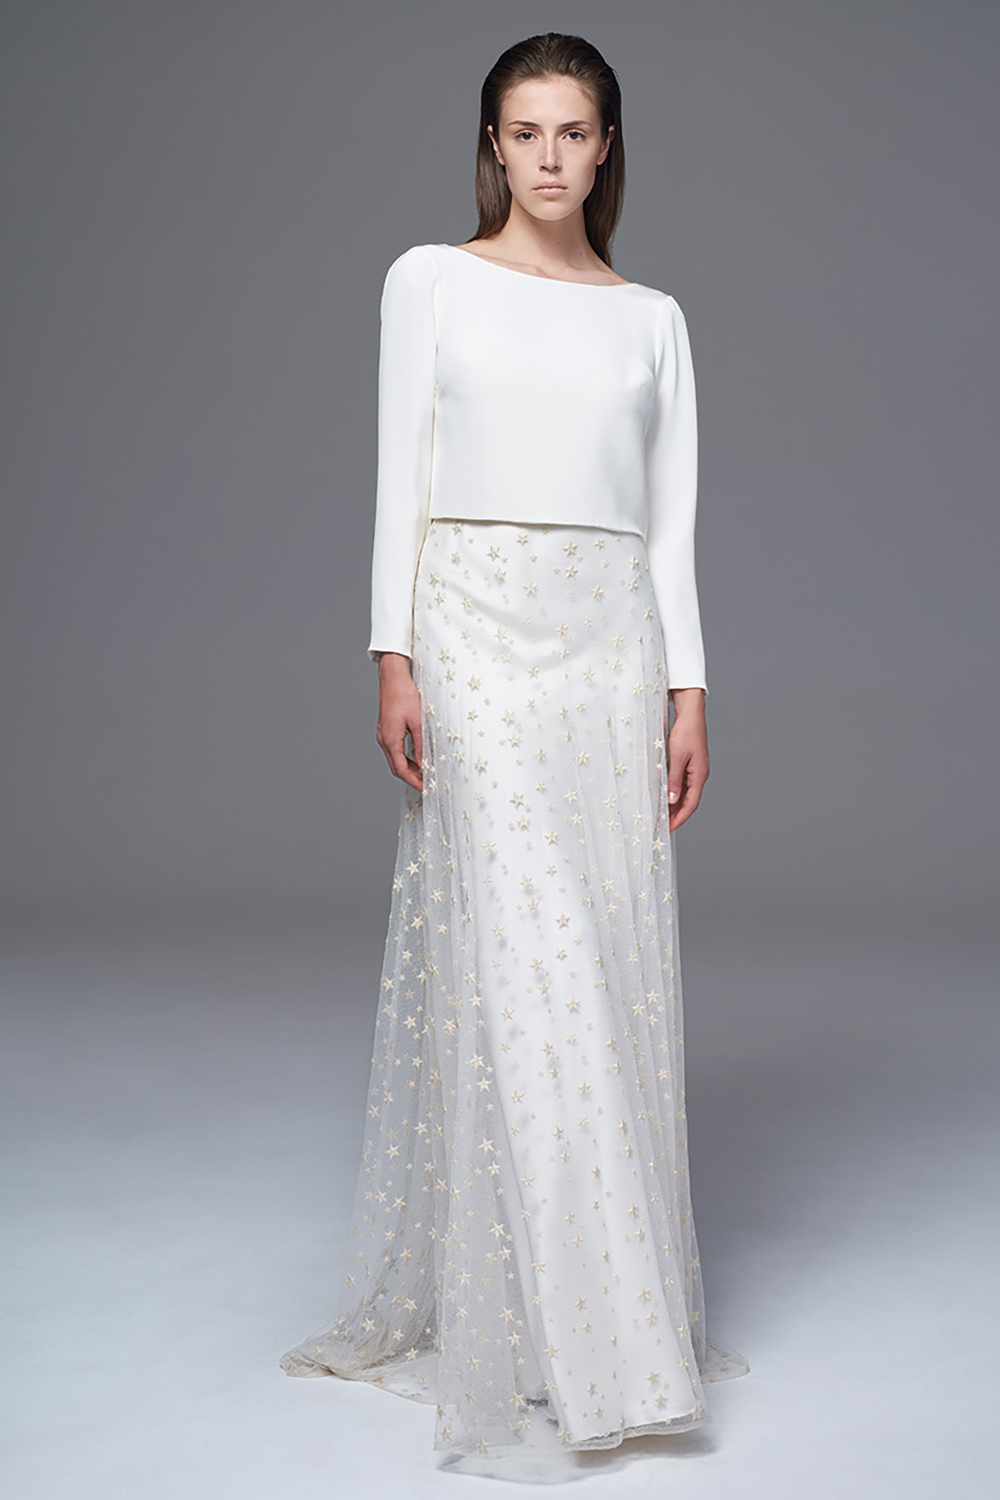 3073a1a8ac30 BRIDAL WEDDING DRESS BY HALFPENNY LONDON. THE LAURA DRAPED AND LONG SLEEVED  CREPE TOP WORN WITH THE SHEER TULLE AND EMBROIDERED STAR